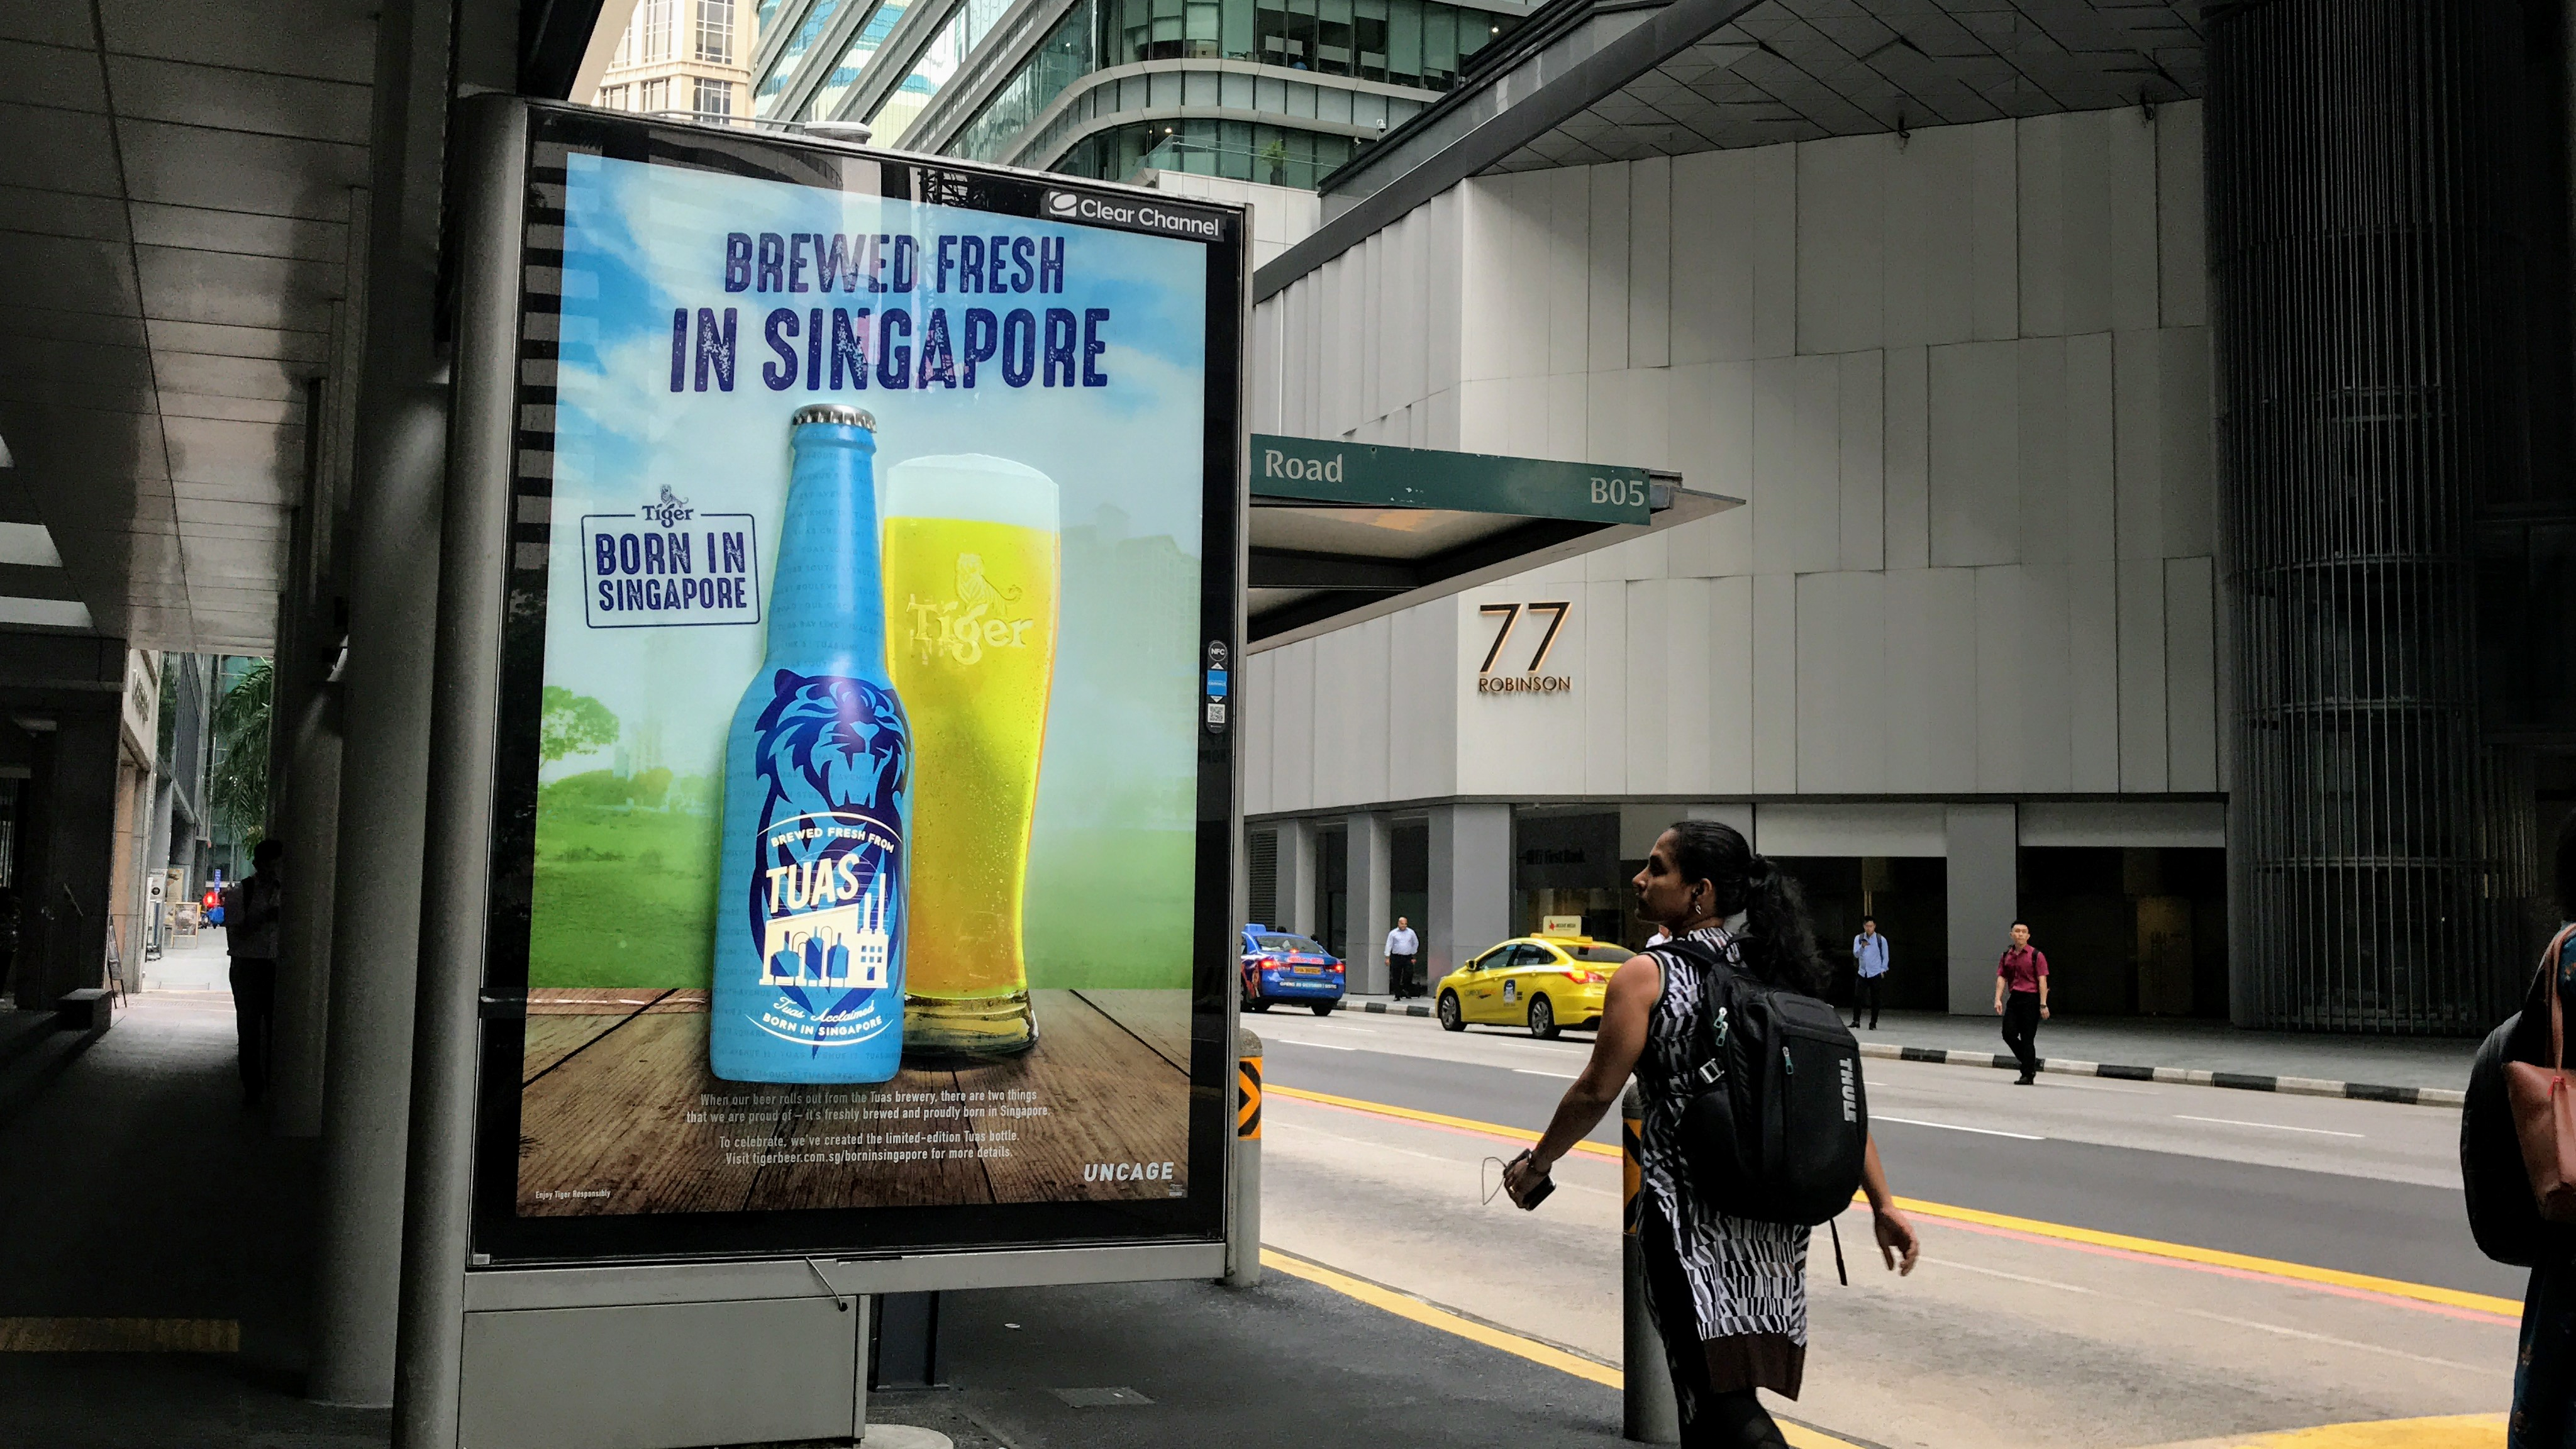 Tiger Beer has launched larger than life 3D versions of its bottle at bus shelters